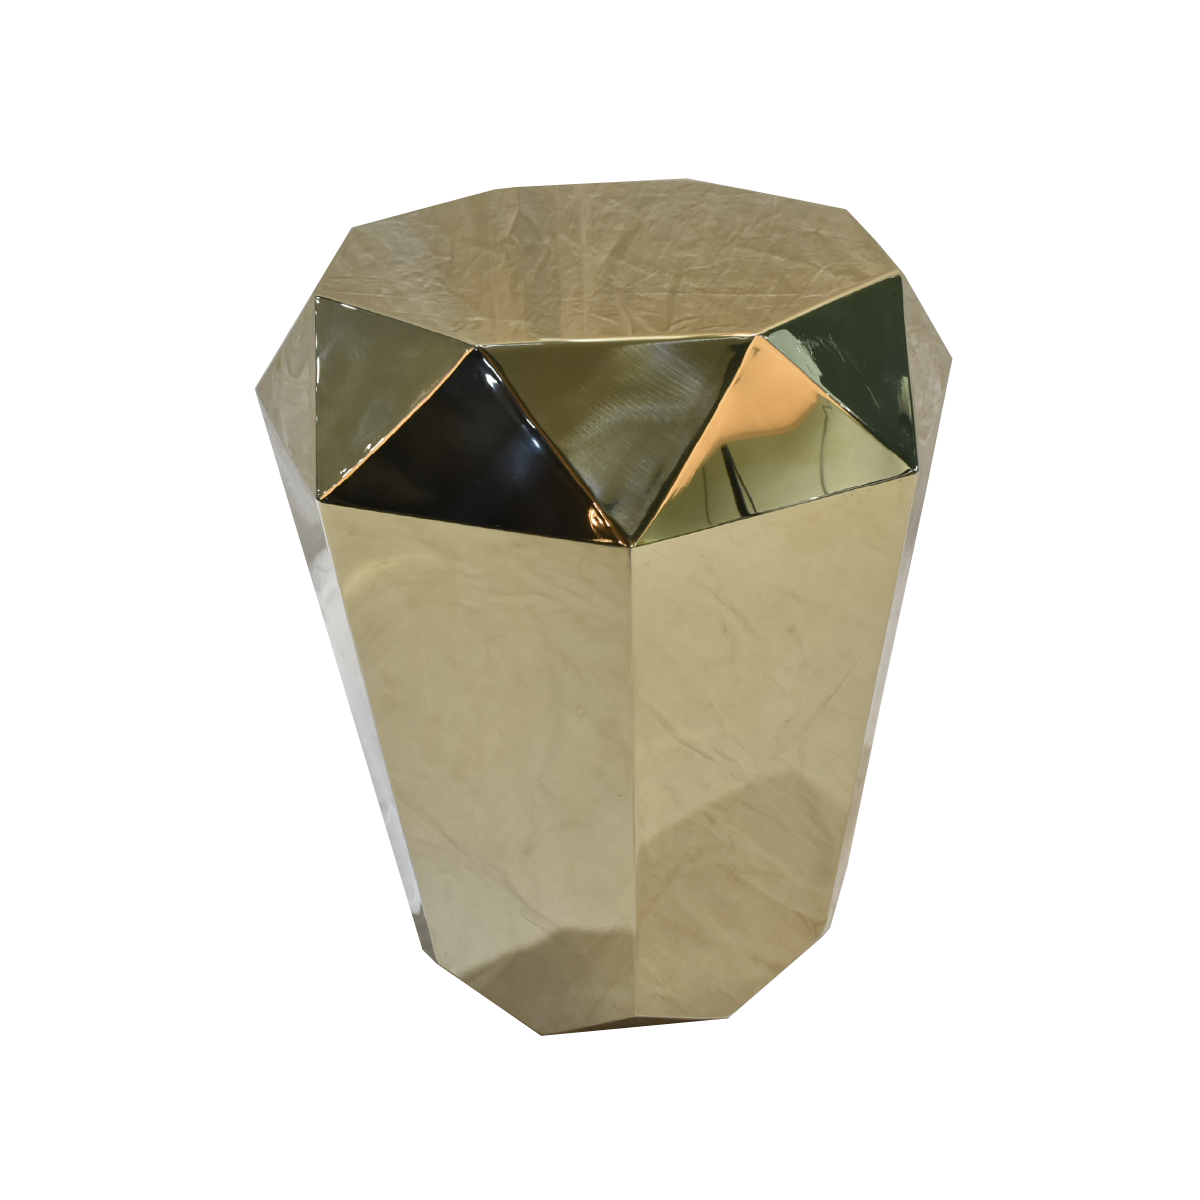 Aak Table Small - mhomefurniture